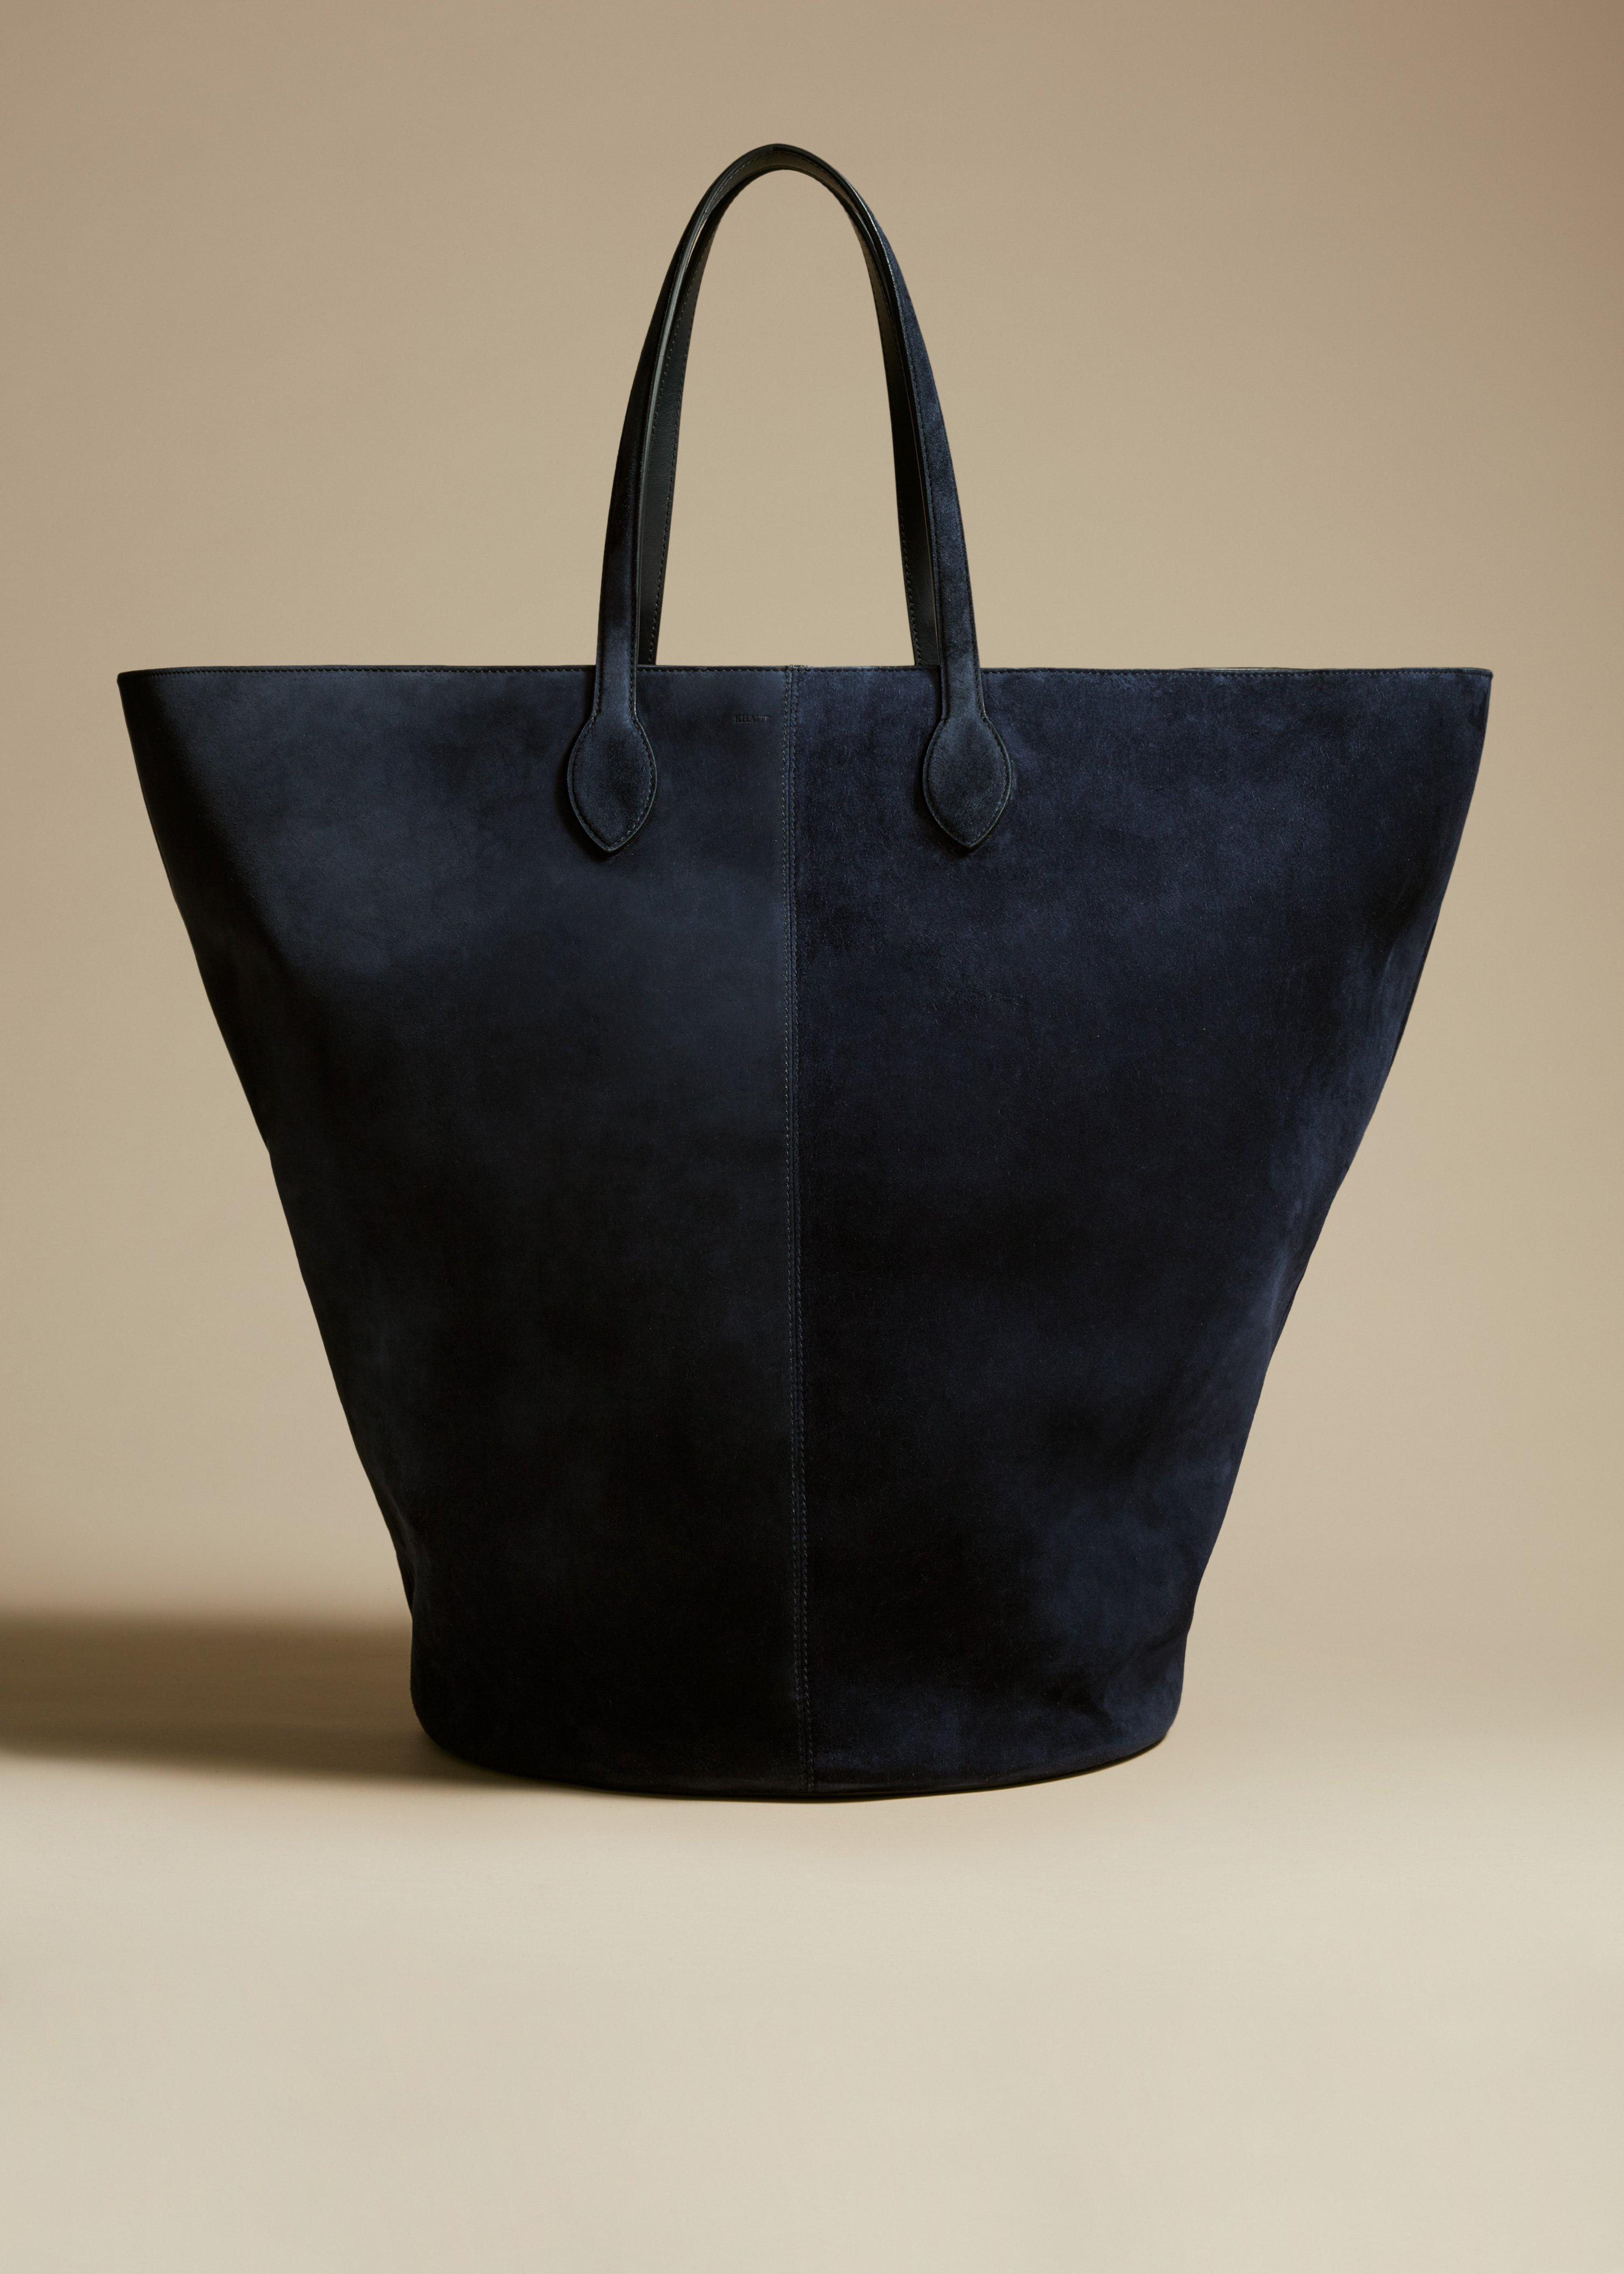 The Large Osa Tote in Navy Suede